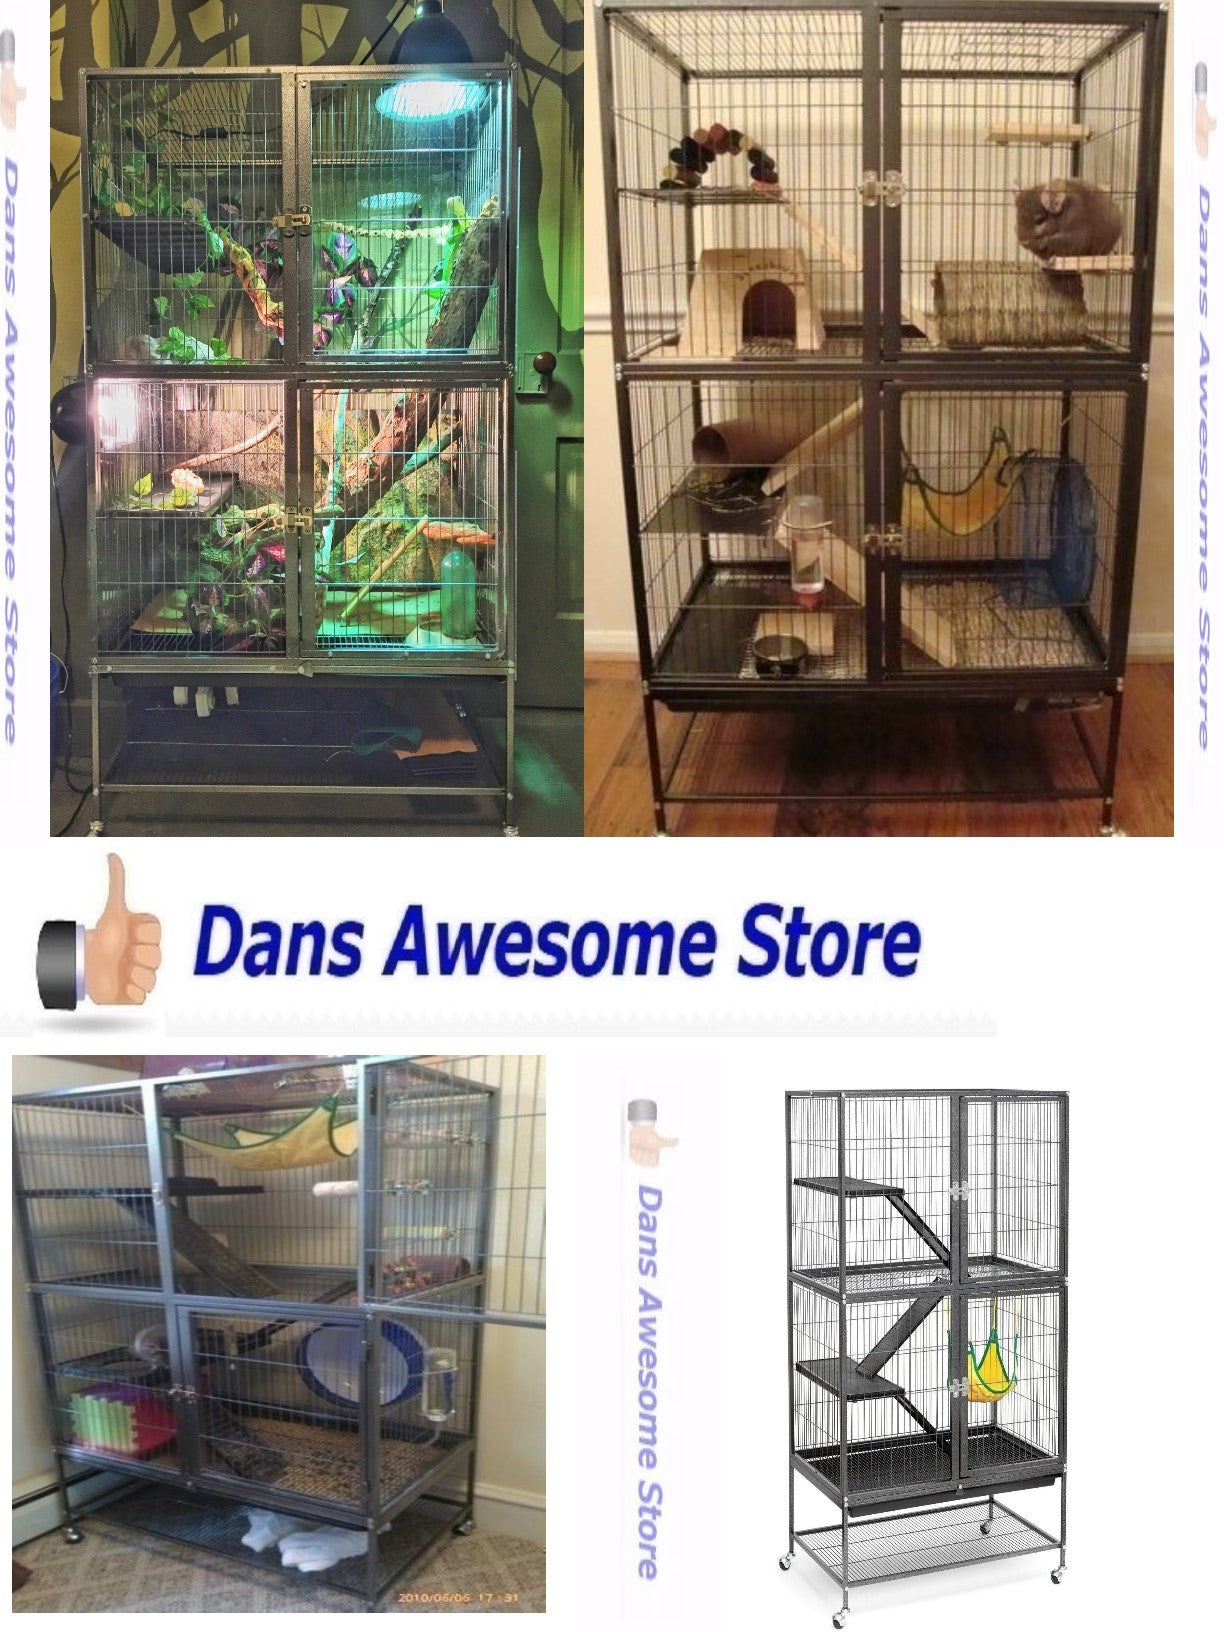 Large Ferret Cage Small Pet Chinchilla Rabbit Hamster Guinea Pig Rat Iguana Sugar Glider House